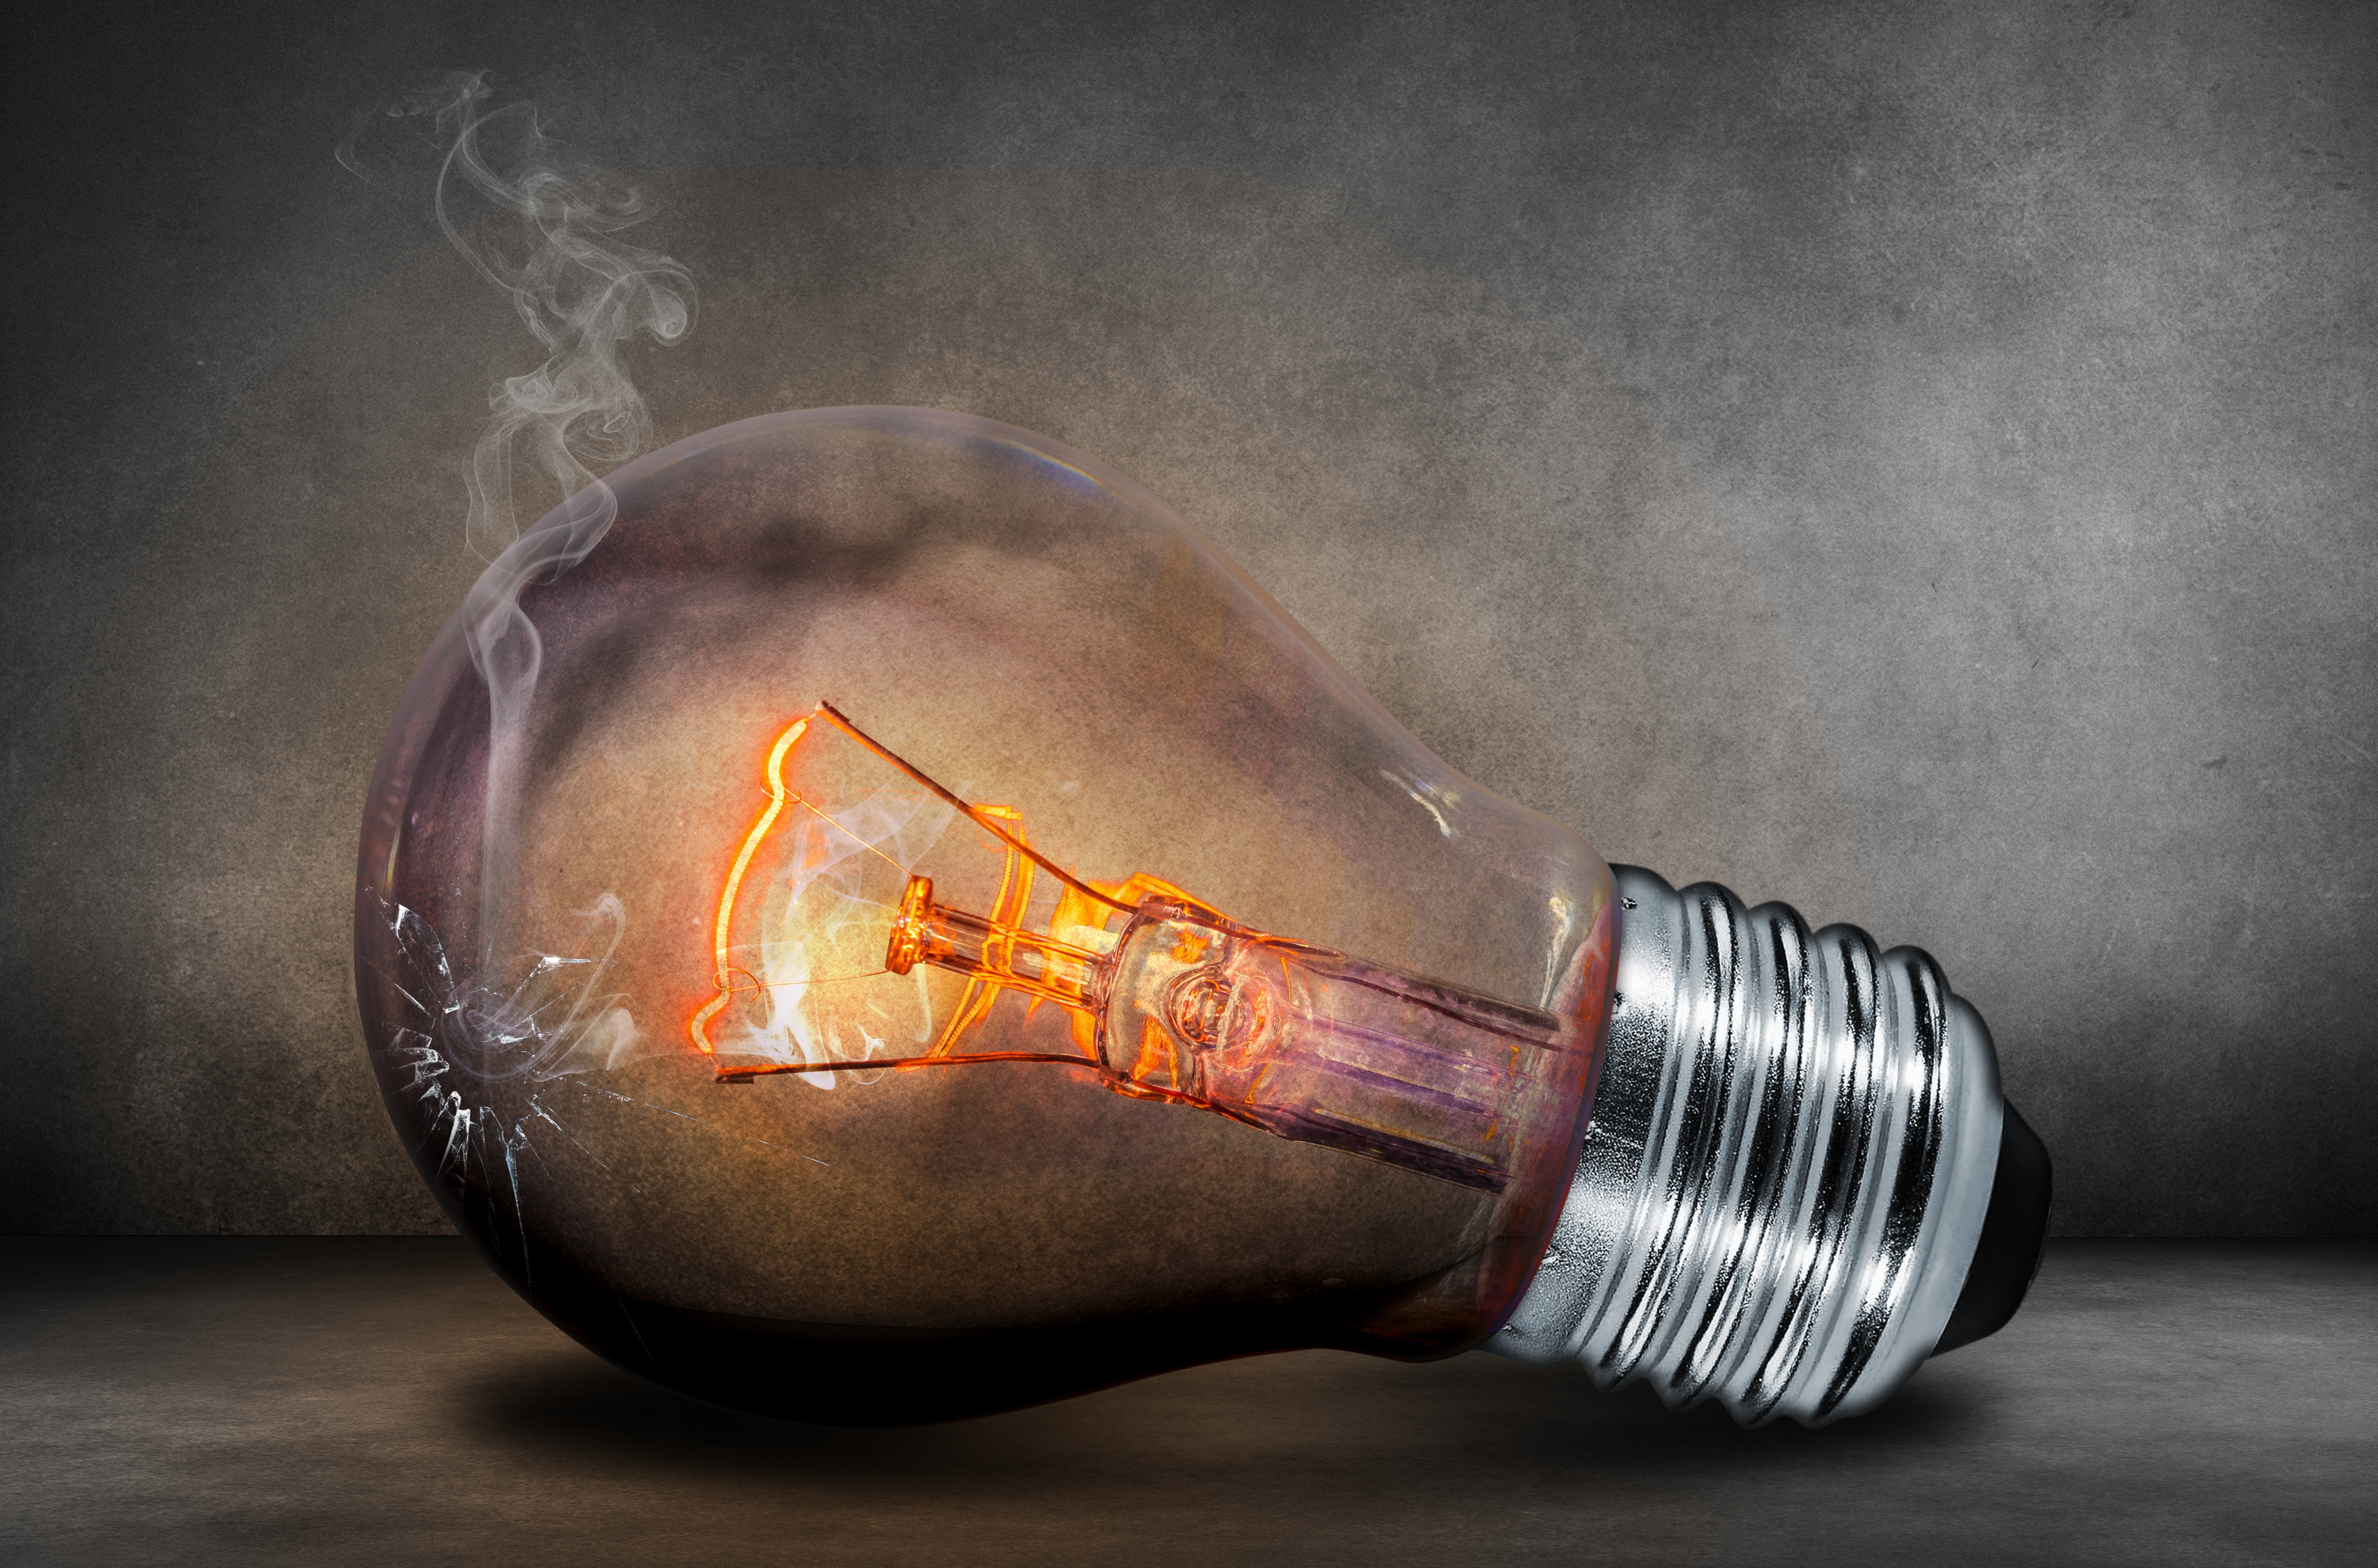 Turned on incandescent bulb HD wallpaper Wallpaper Flare 4648x3065